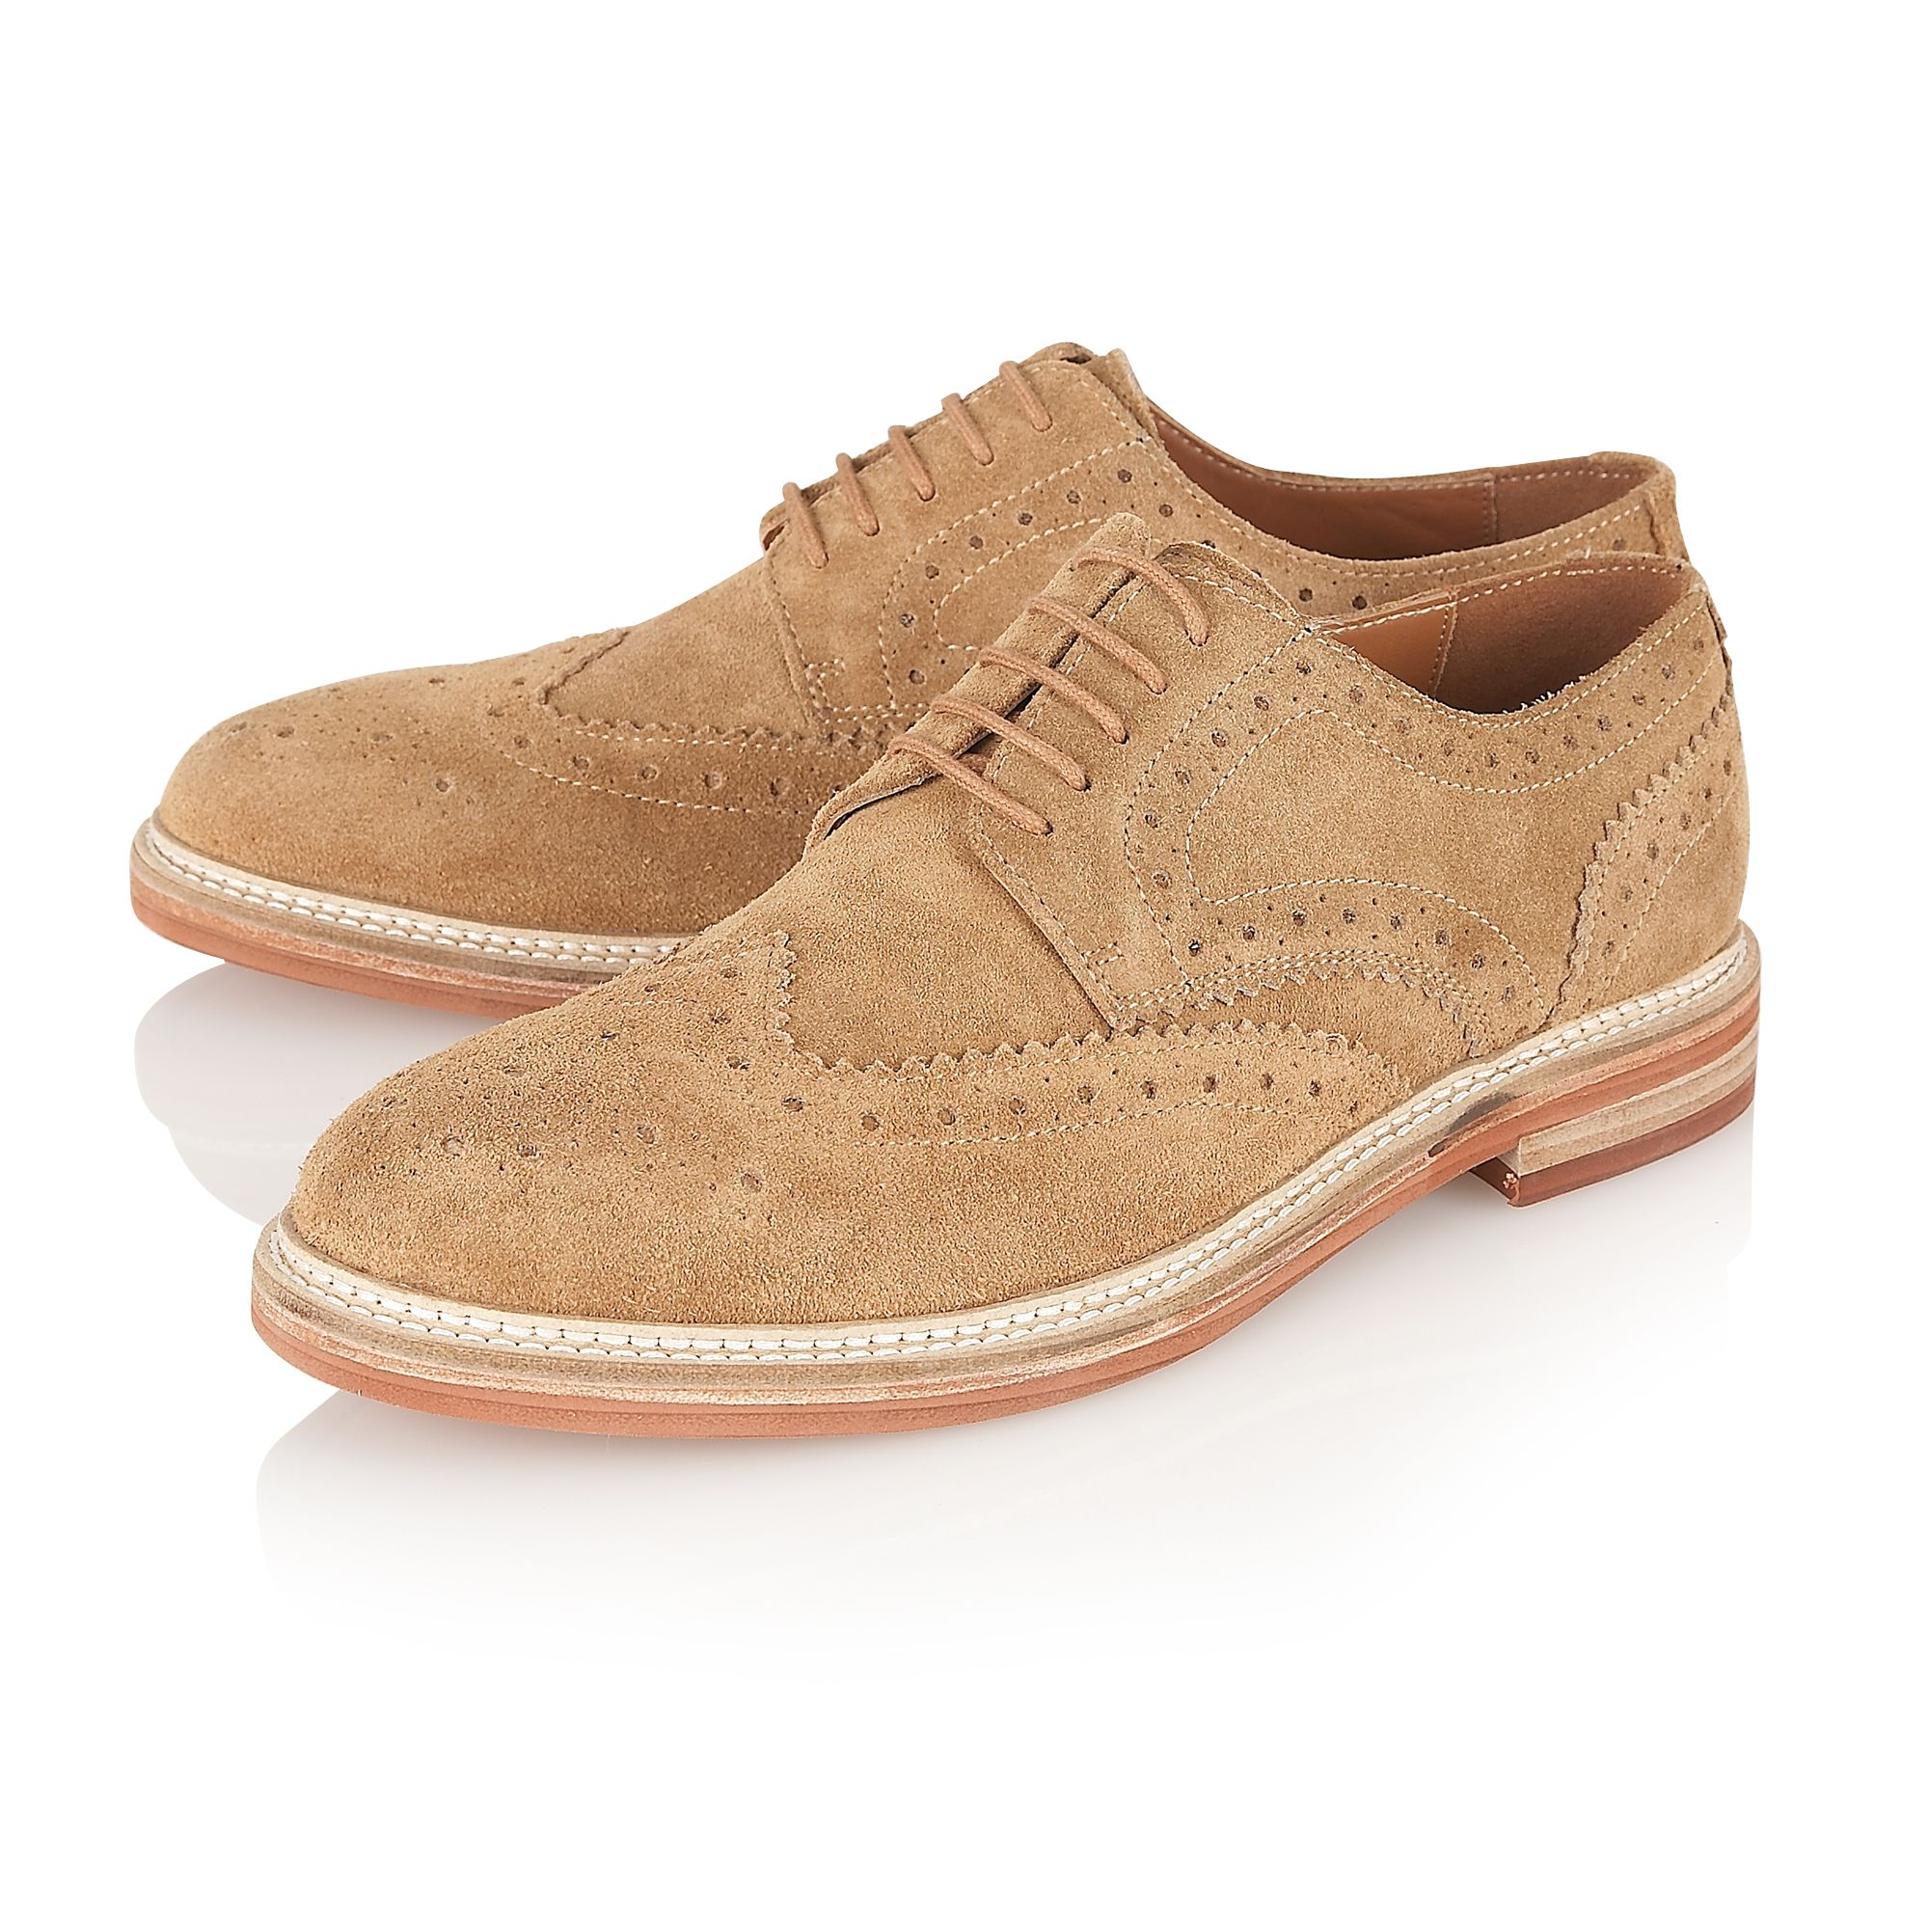 Fry round-toe brogue shoes